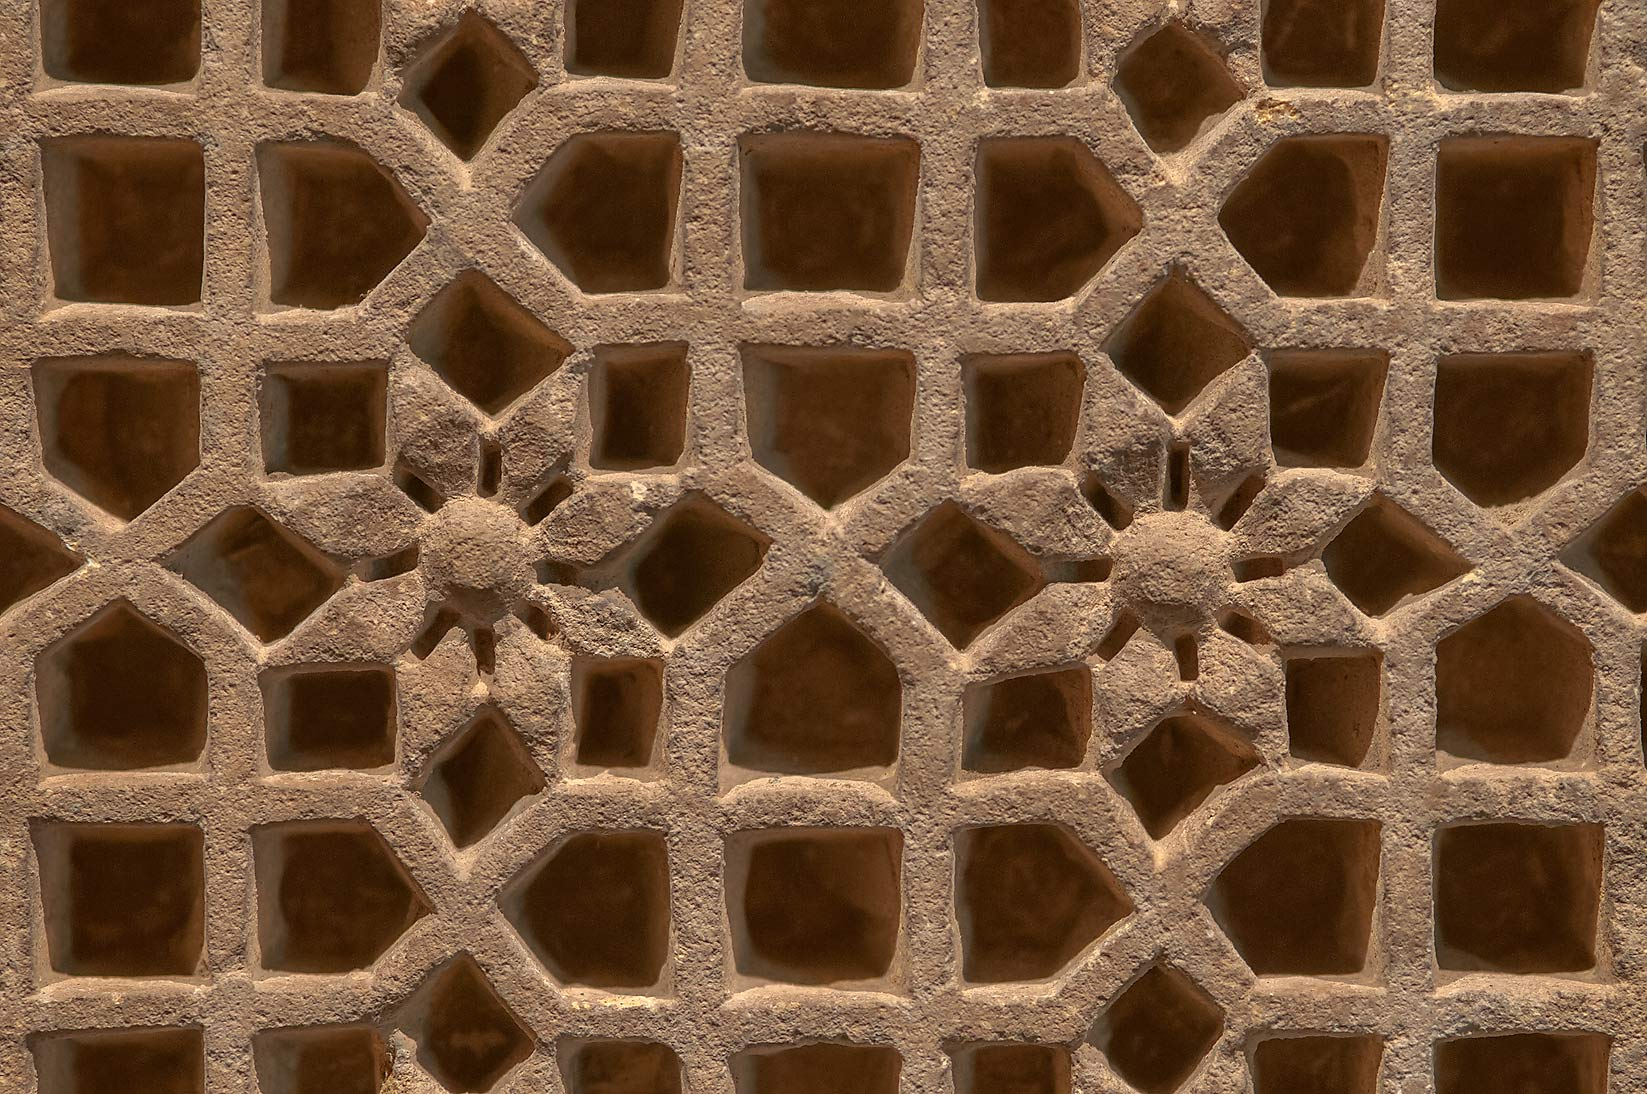 Pottery grid on display in Museum of Islamic Art. Doha, Qatar